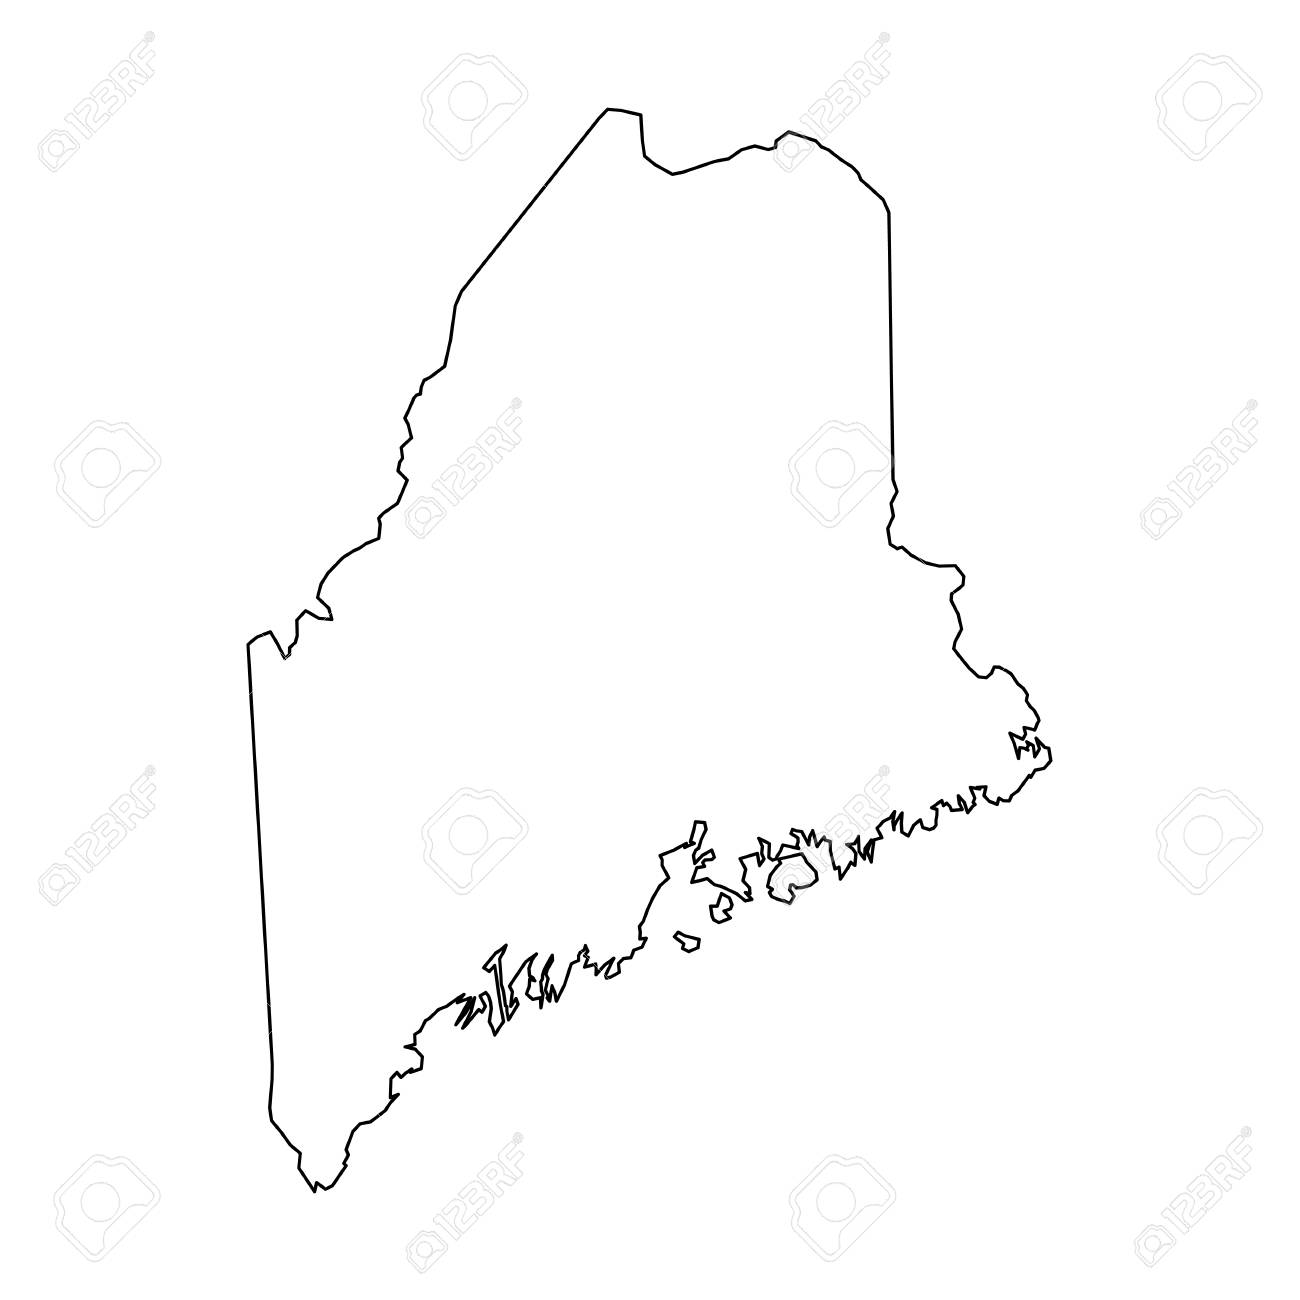 Maine, state of USA - solid black outline map of country area...